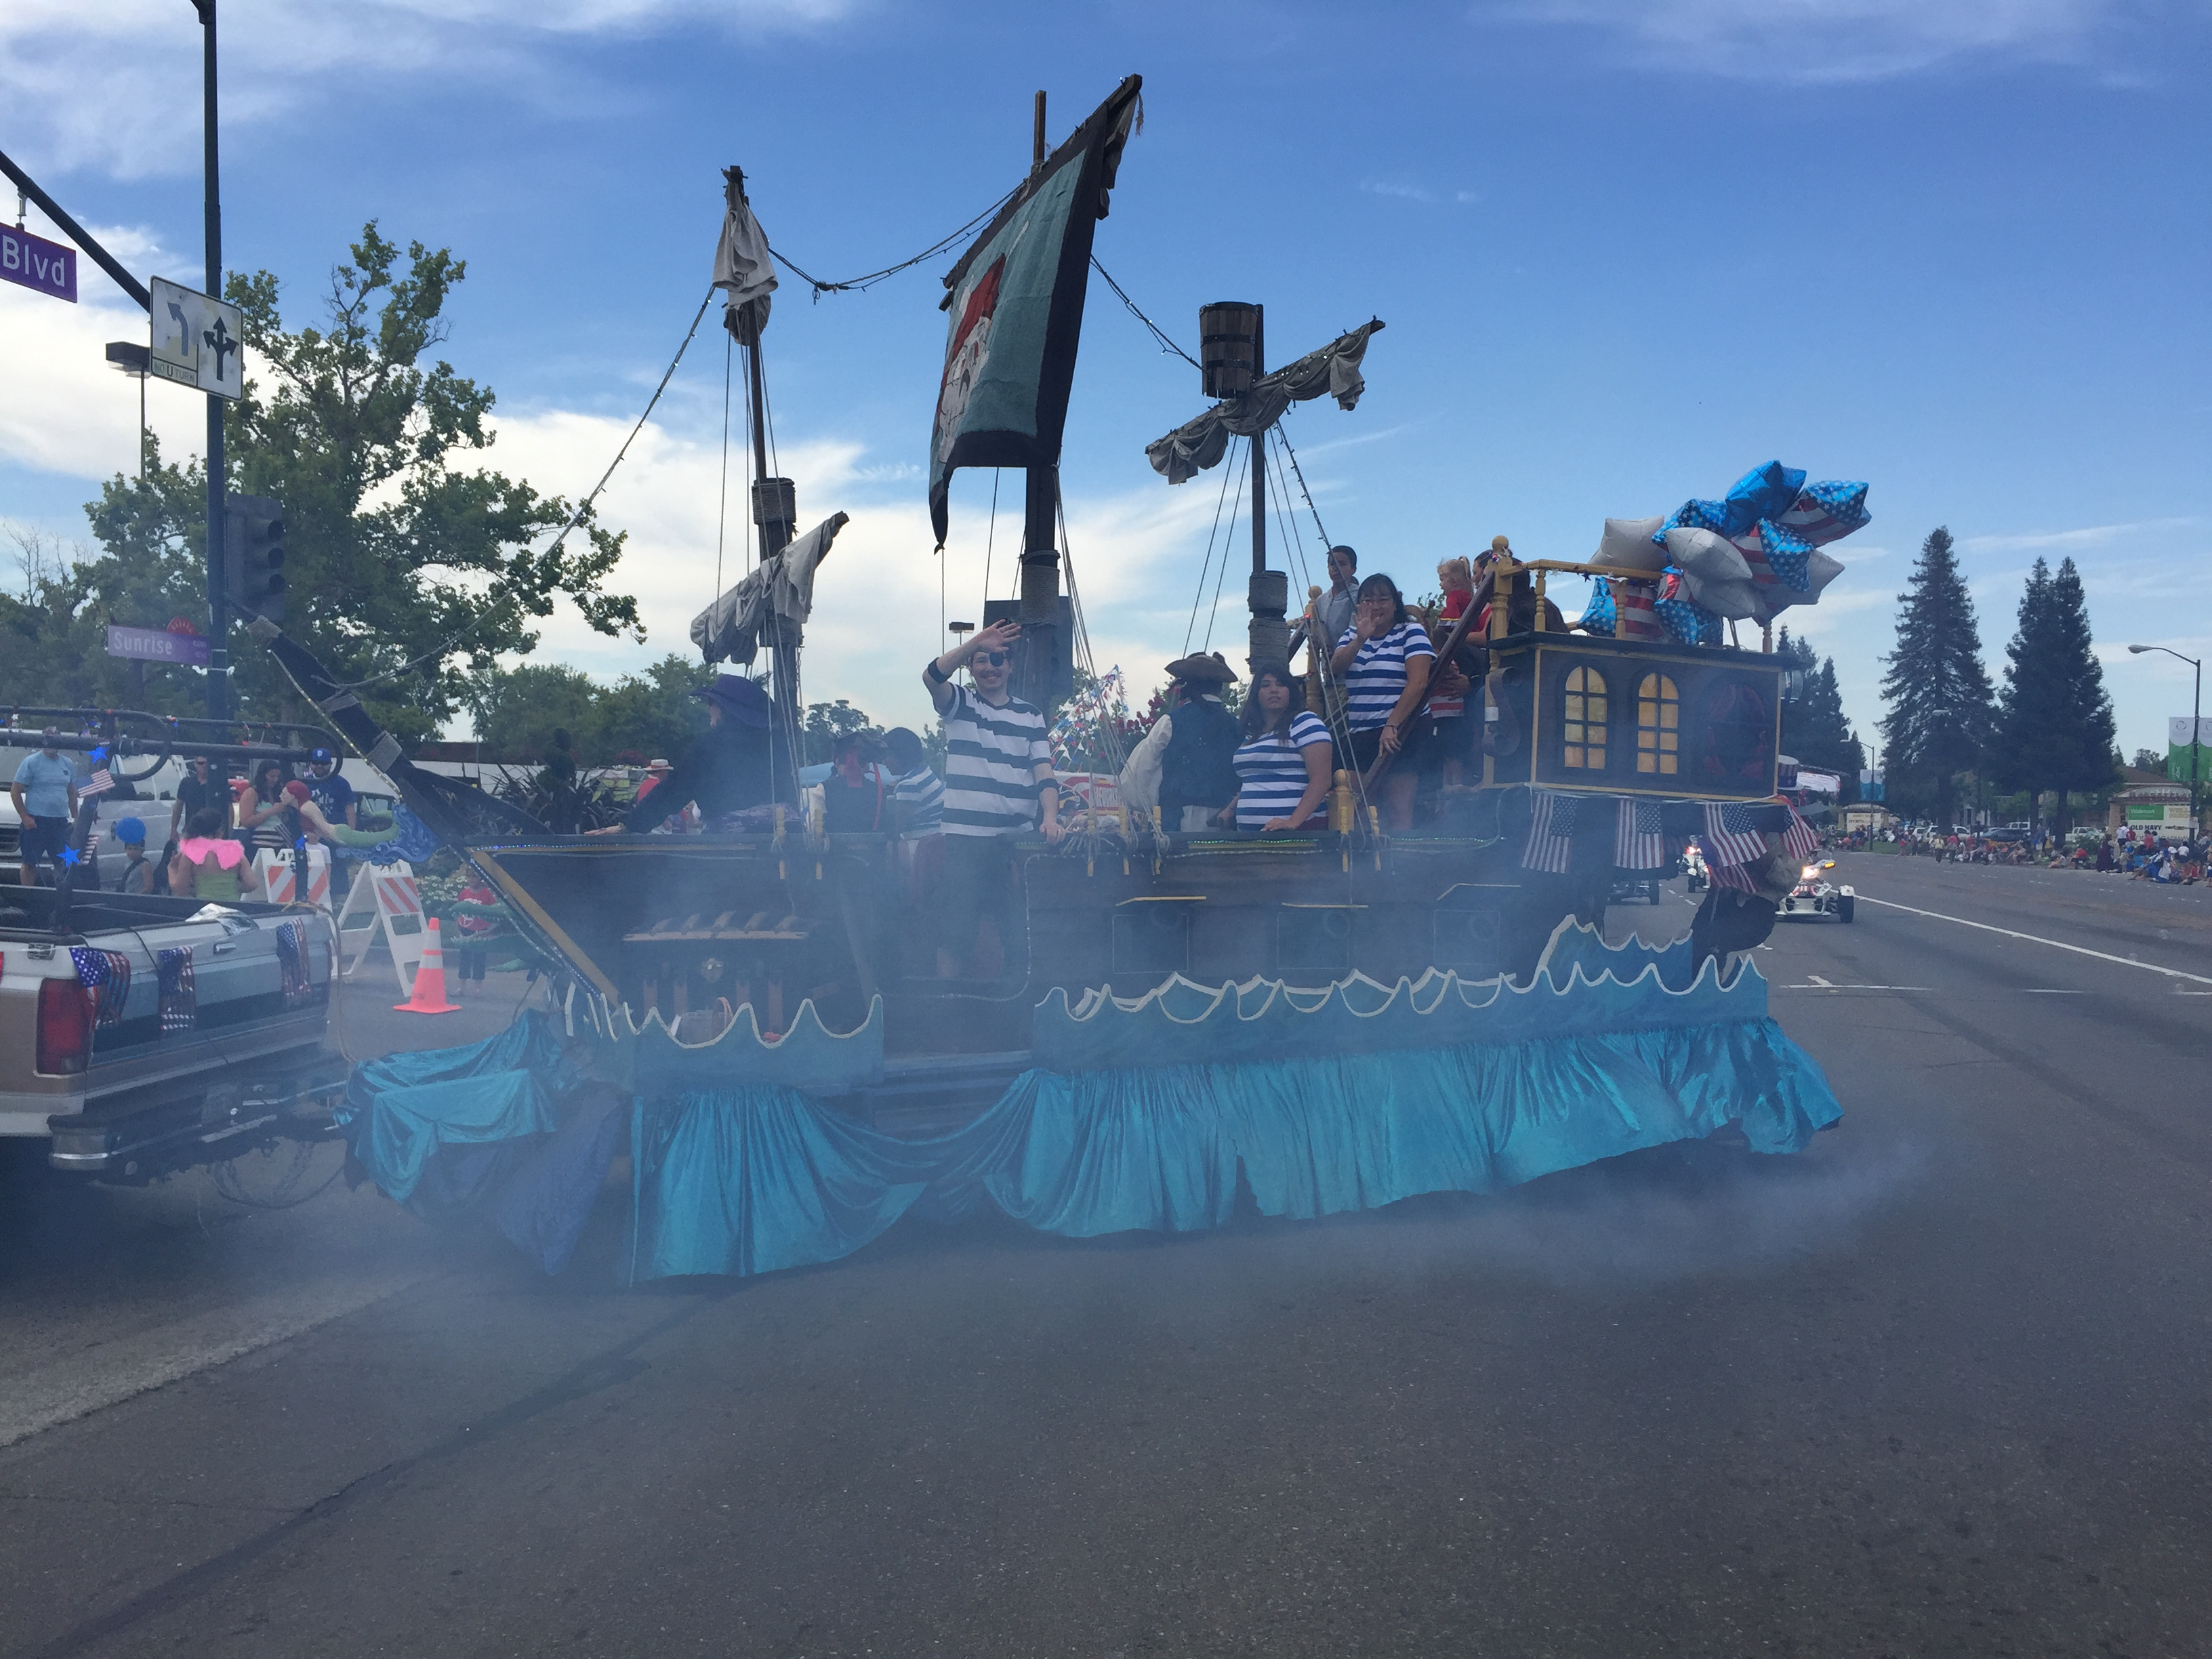 Pirate ship float